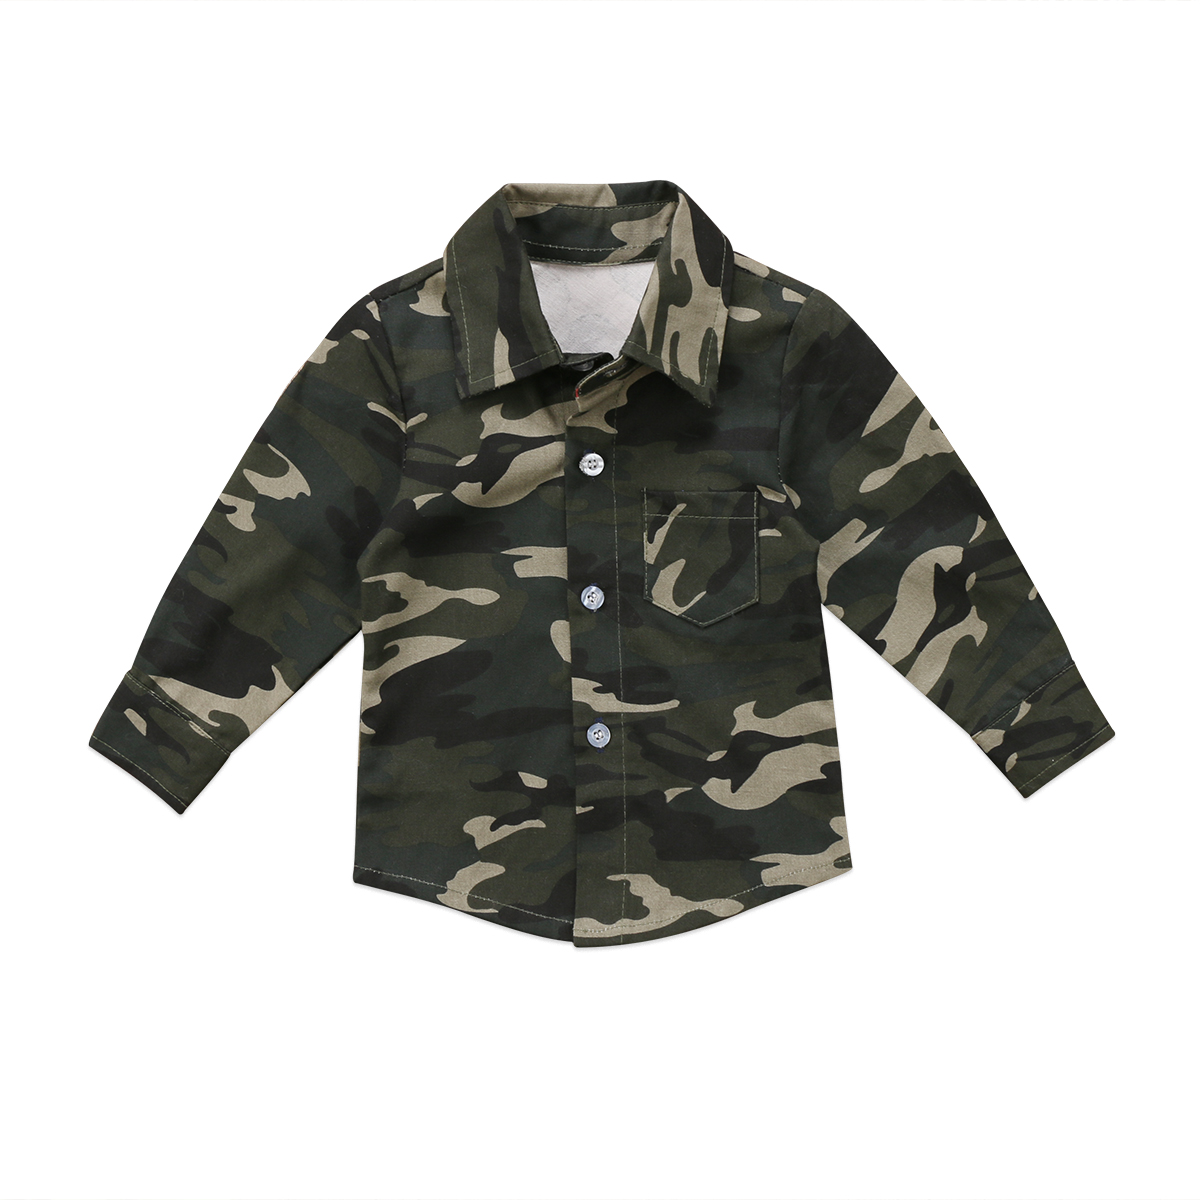 Gift Kids Infant Baby Boys Girls Fashion Cool Camo Long Sleeve Top Camouflage Shirts Holiday Casual Clothes